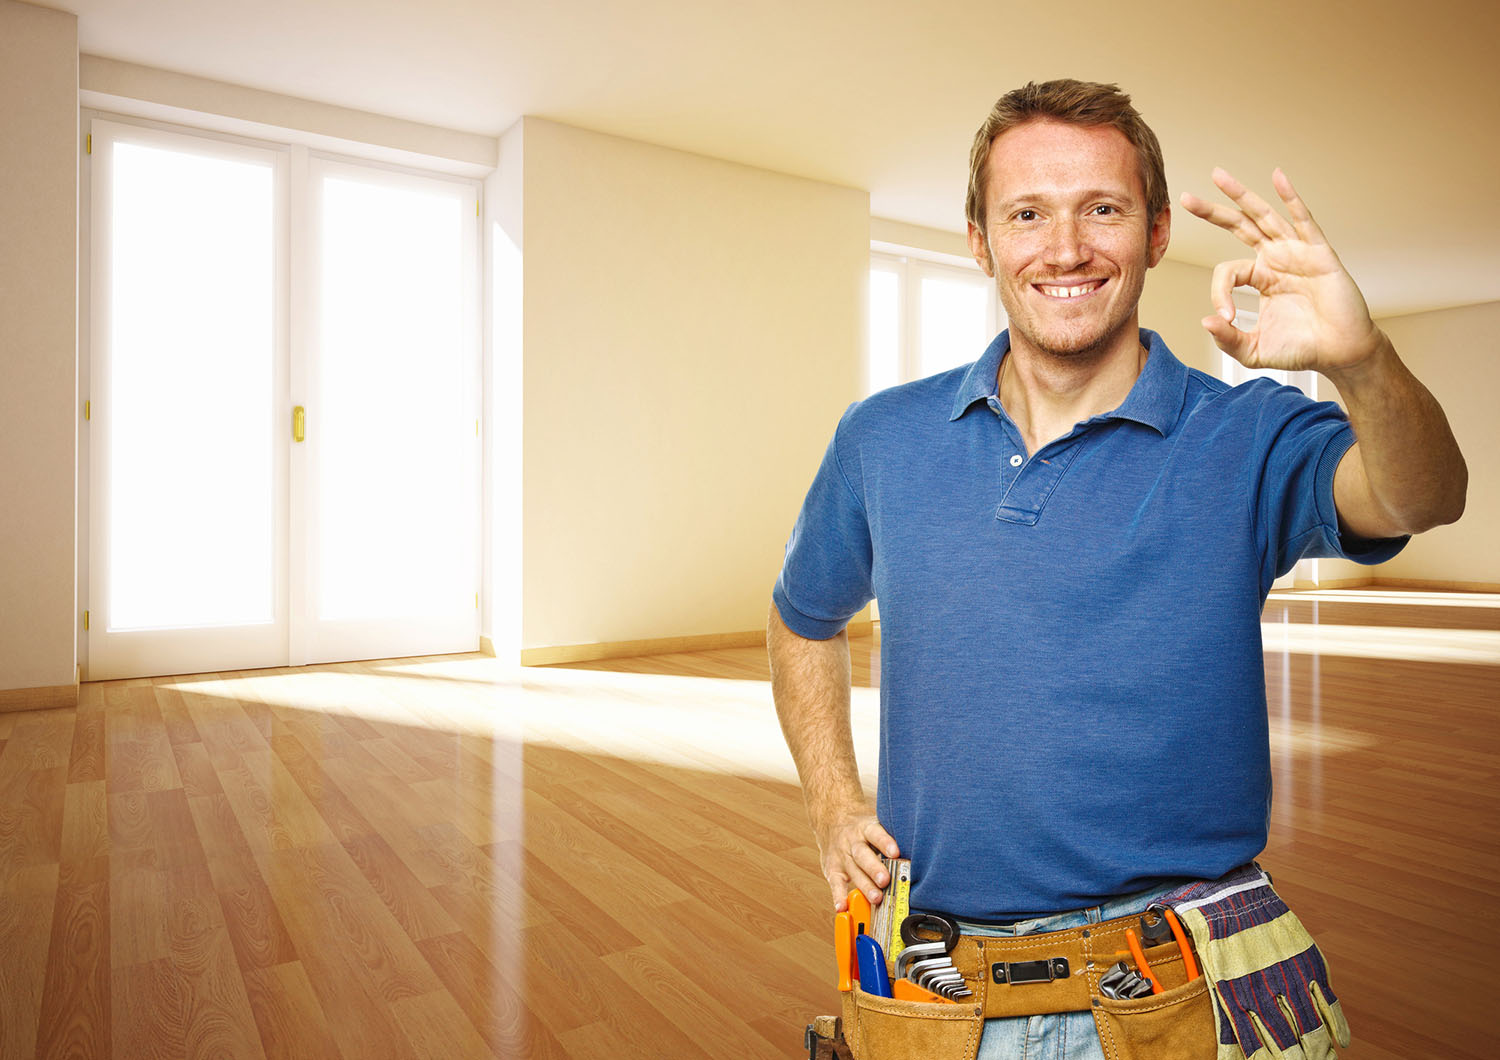 handyman in a blue shirt